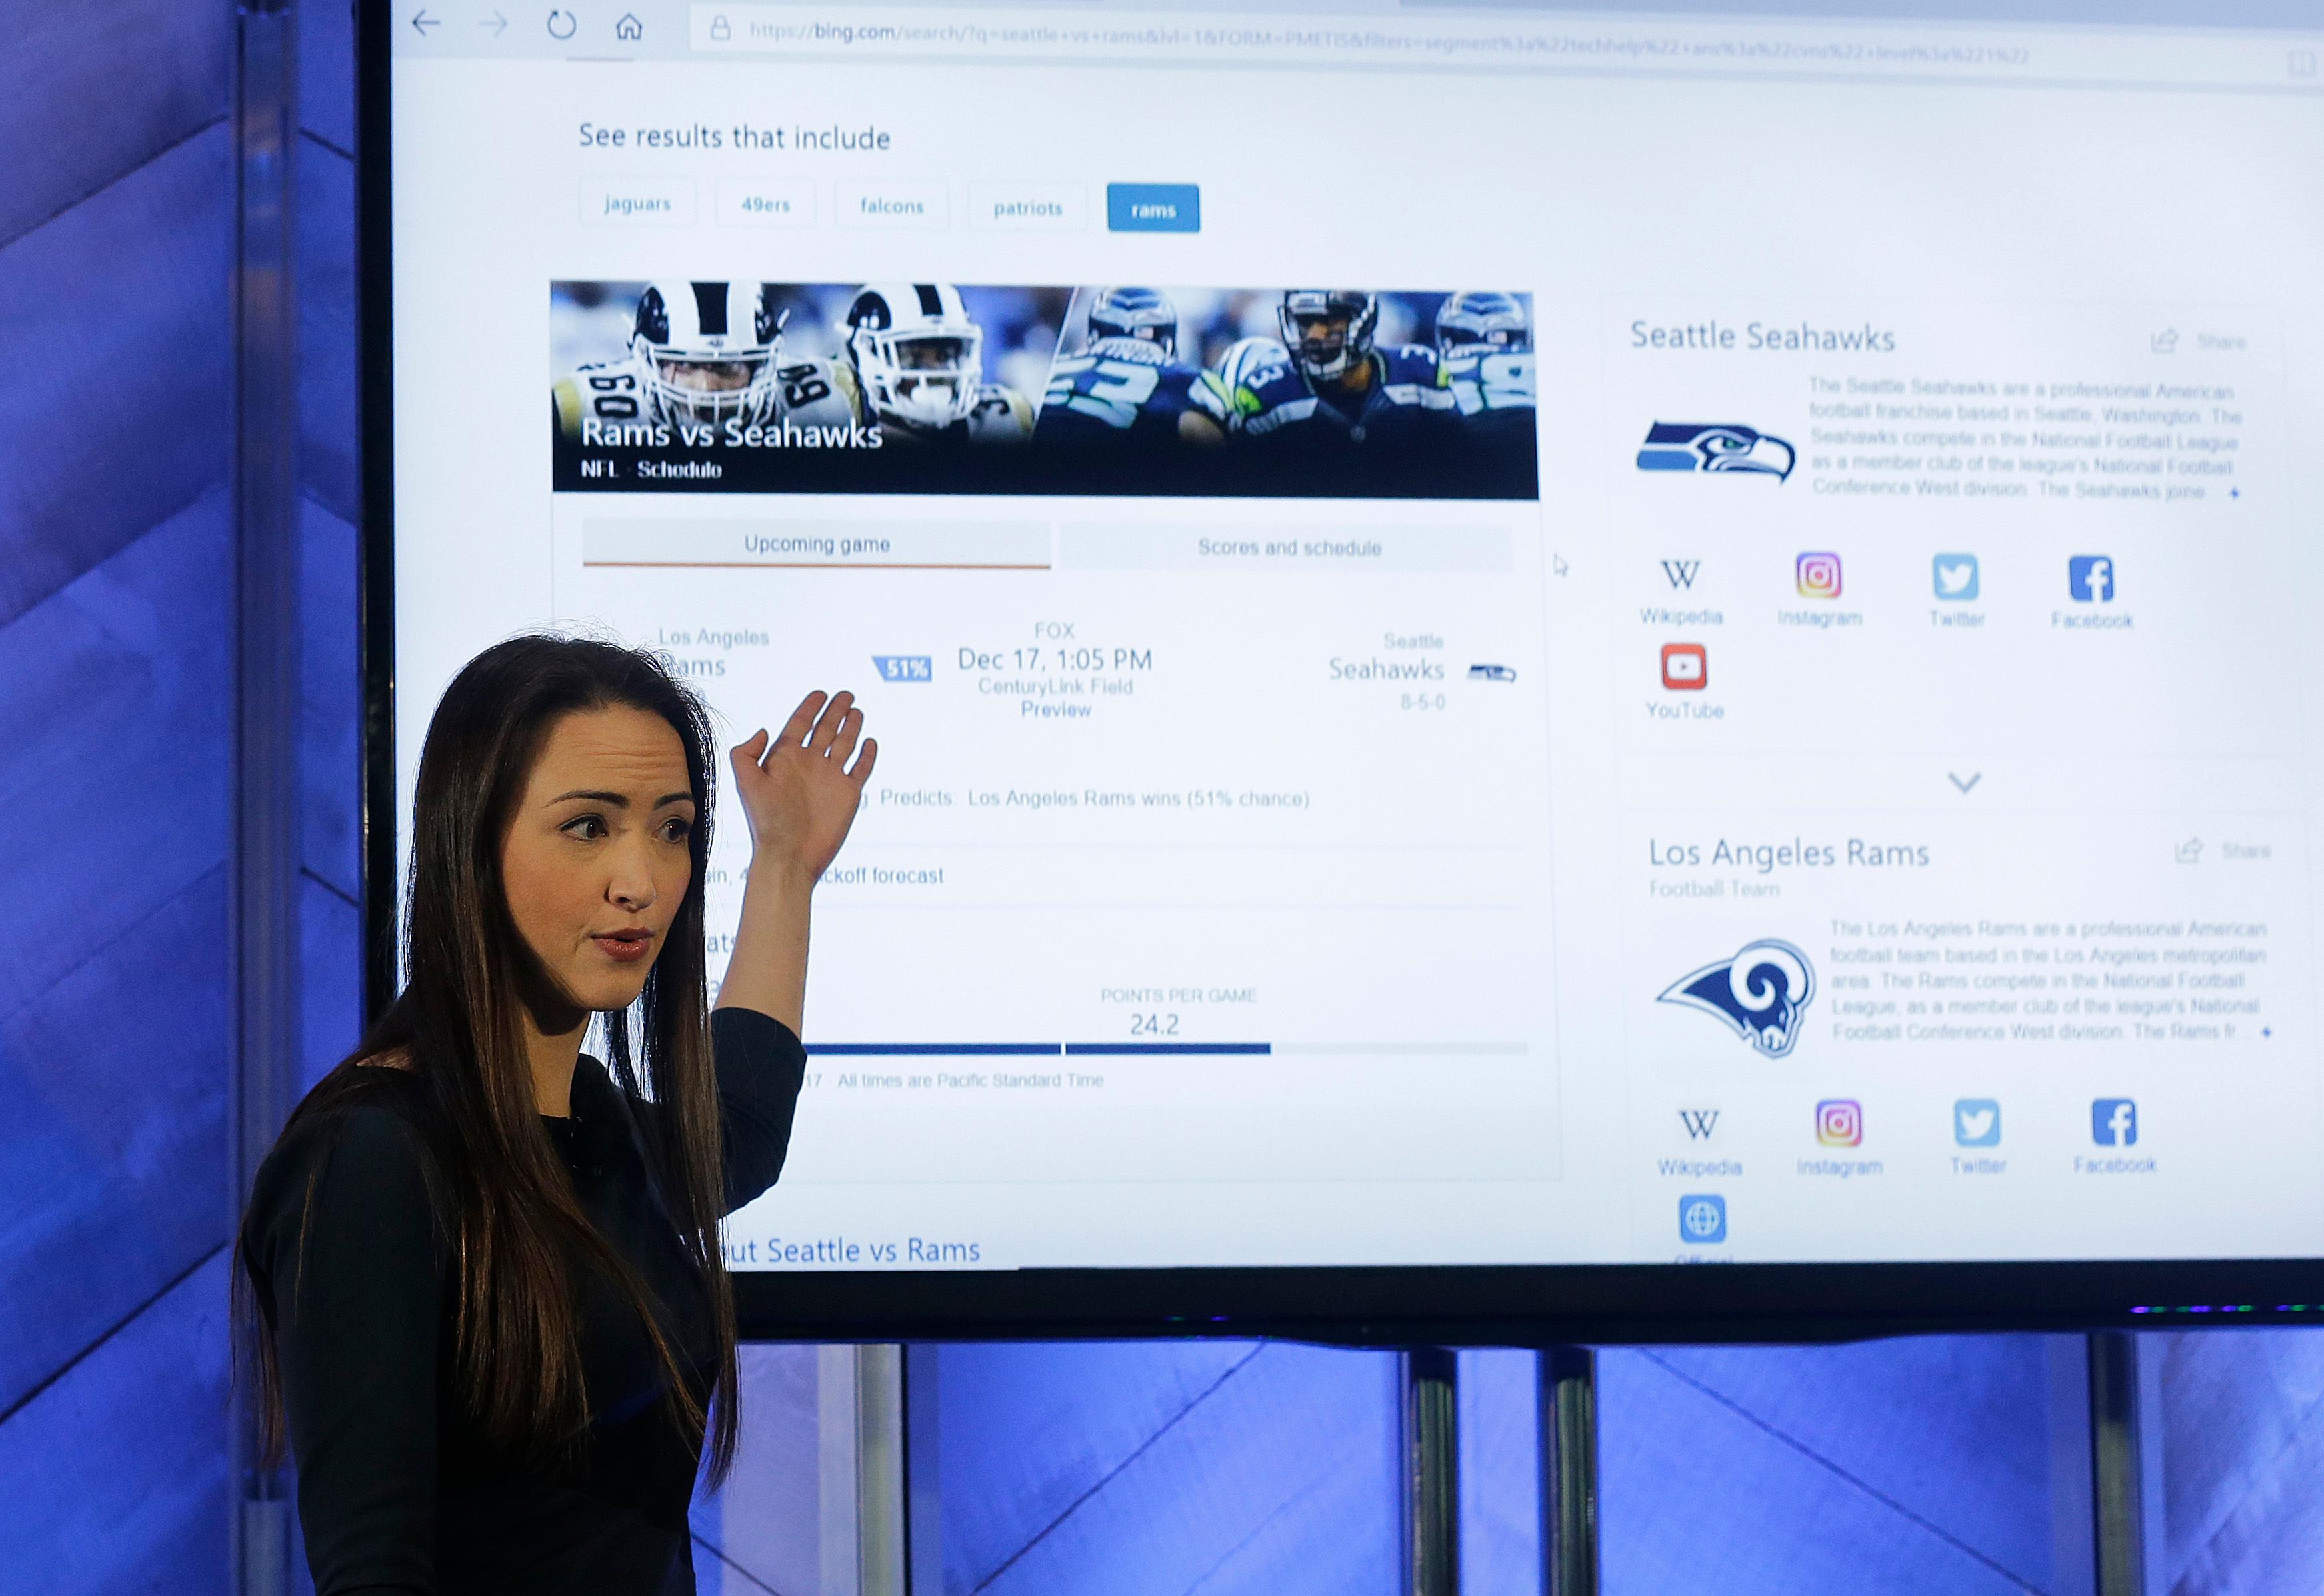 Kristina Behr, partner program manager for AI product design, gives a demonstration of new intelligence search features in Bing at a Microsoft event in San Francisco, Wednesday, Dec. 13, 2017. Microsoft rolled out new features on its Bing search engine powered by artificial intelligence, including one that summarizes the two opposing sides of contentious questions, and another that measures how many reputable sources are behind a given answer. (AP Photo/Jeff Chiu)